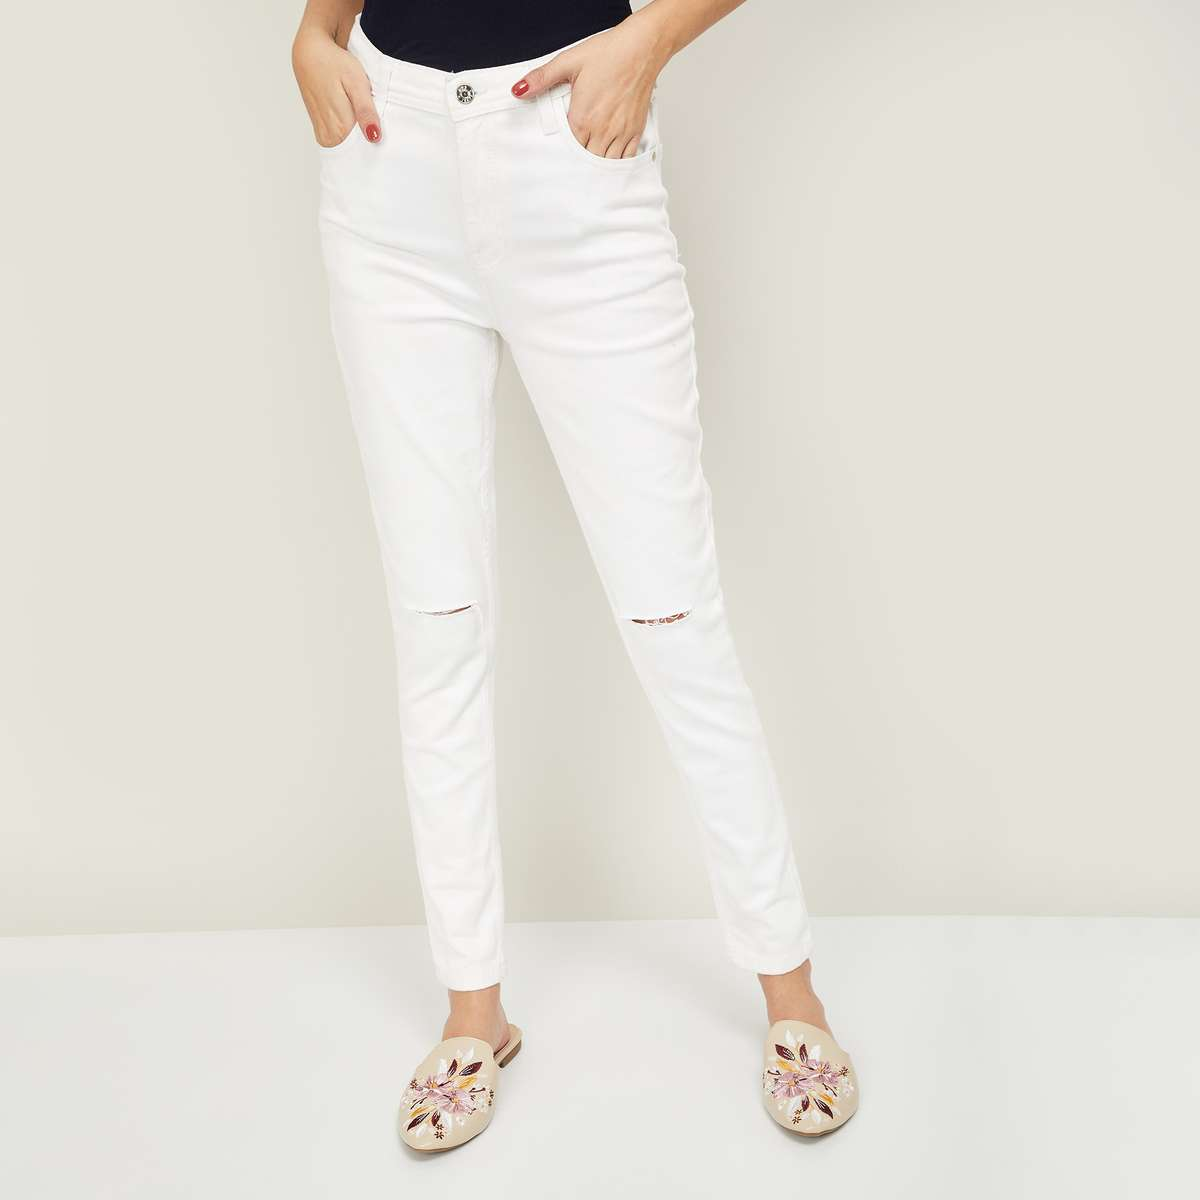 7.AND Women Solid Regular Fit Jeans